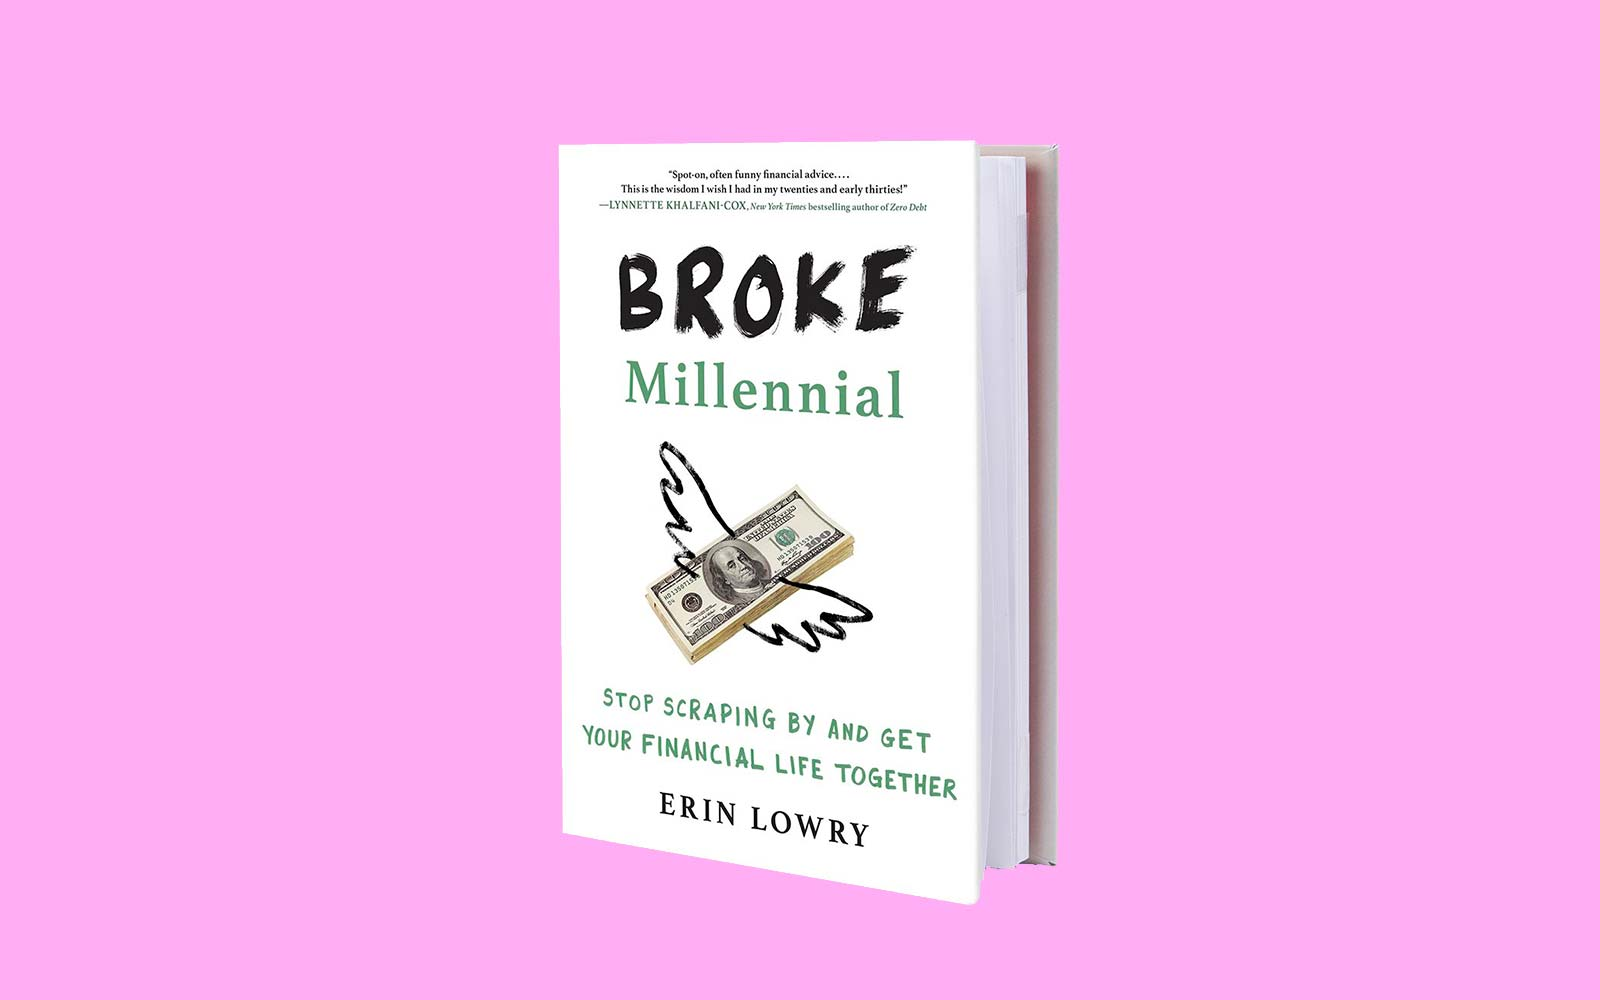 There's a new book about money that millennials will actually read